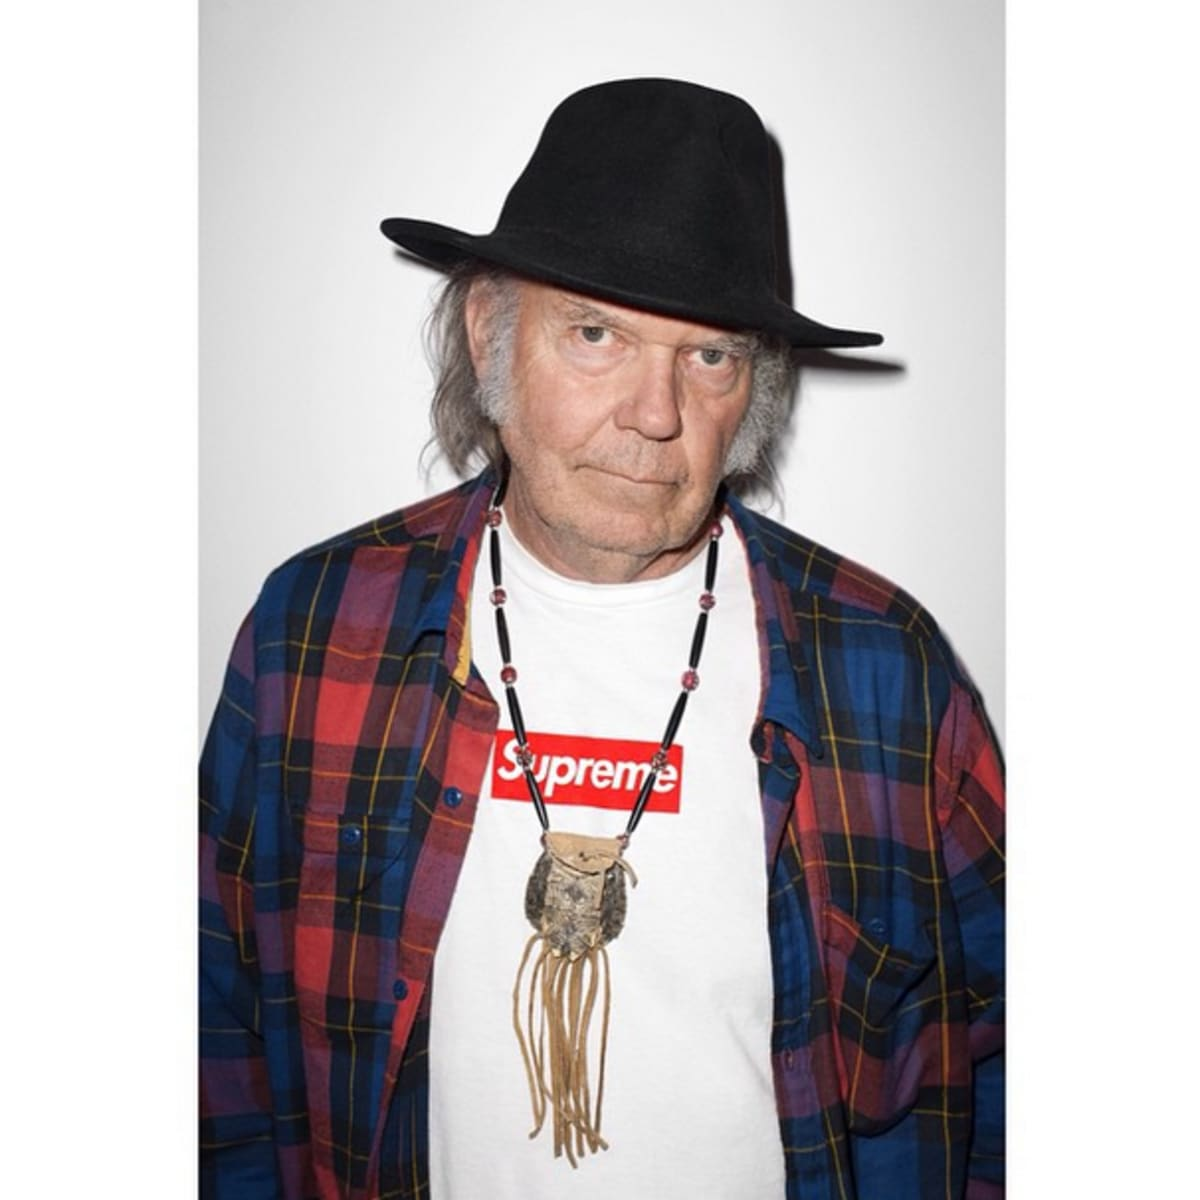 supremes new ad campaign features neil young complex